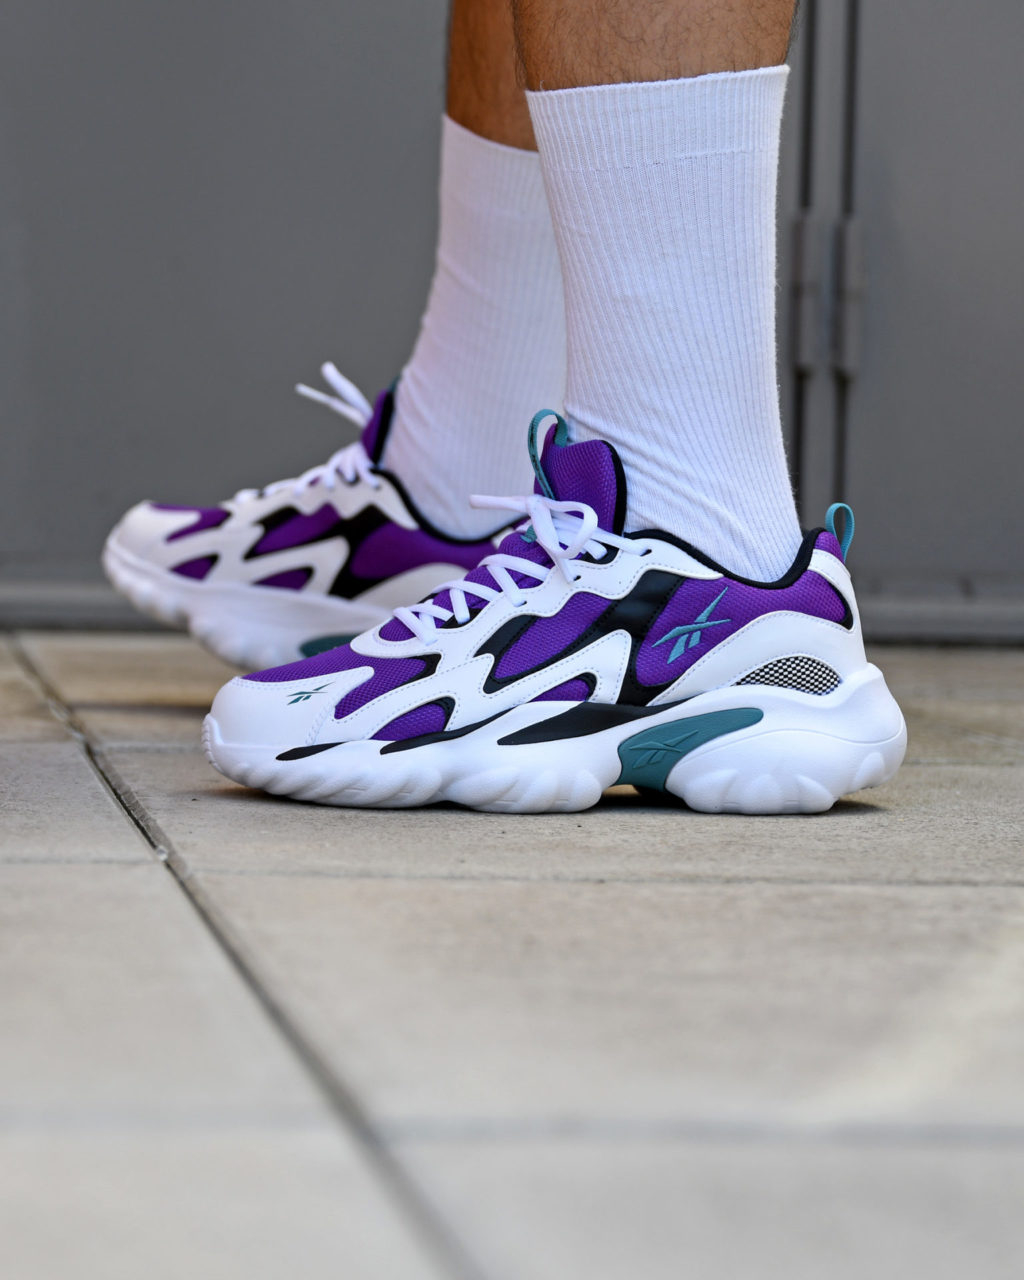 Reebok DMX Series 1000 Fall 2019